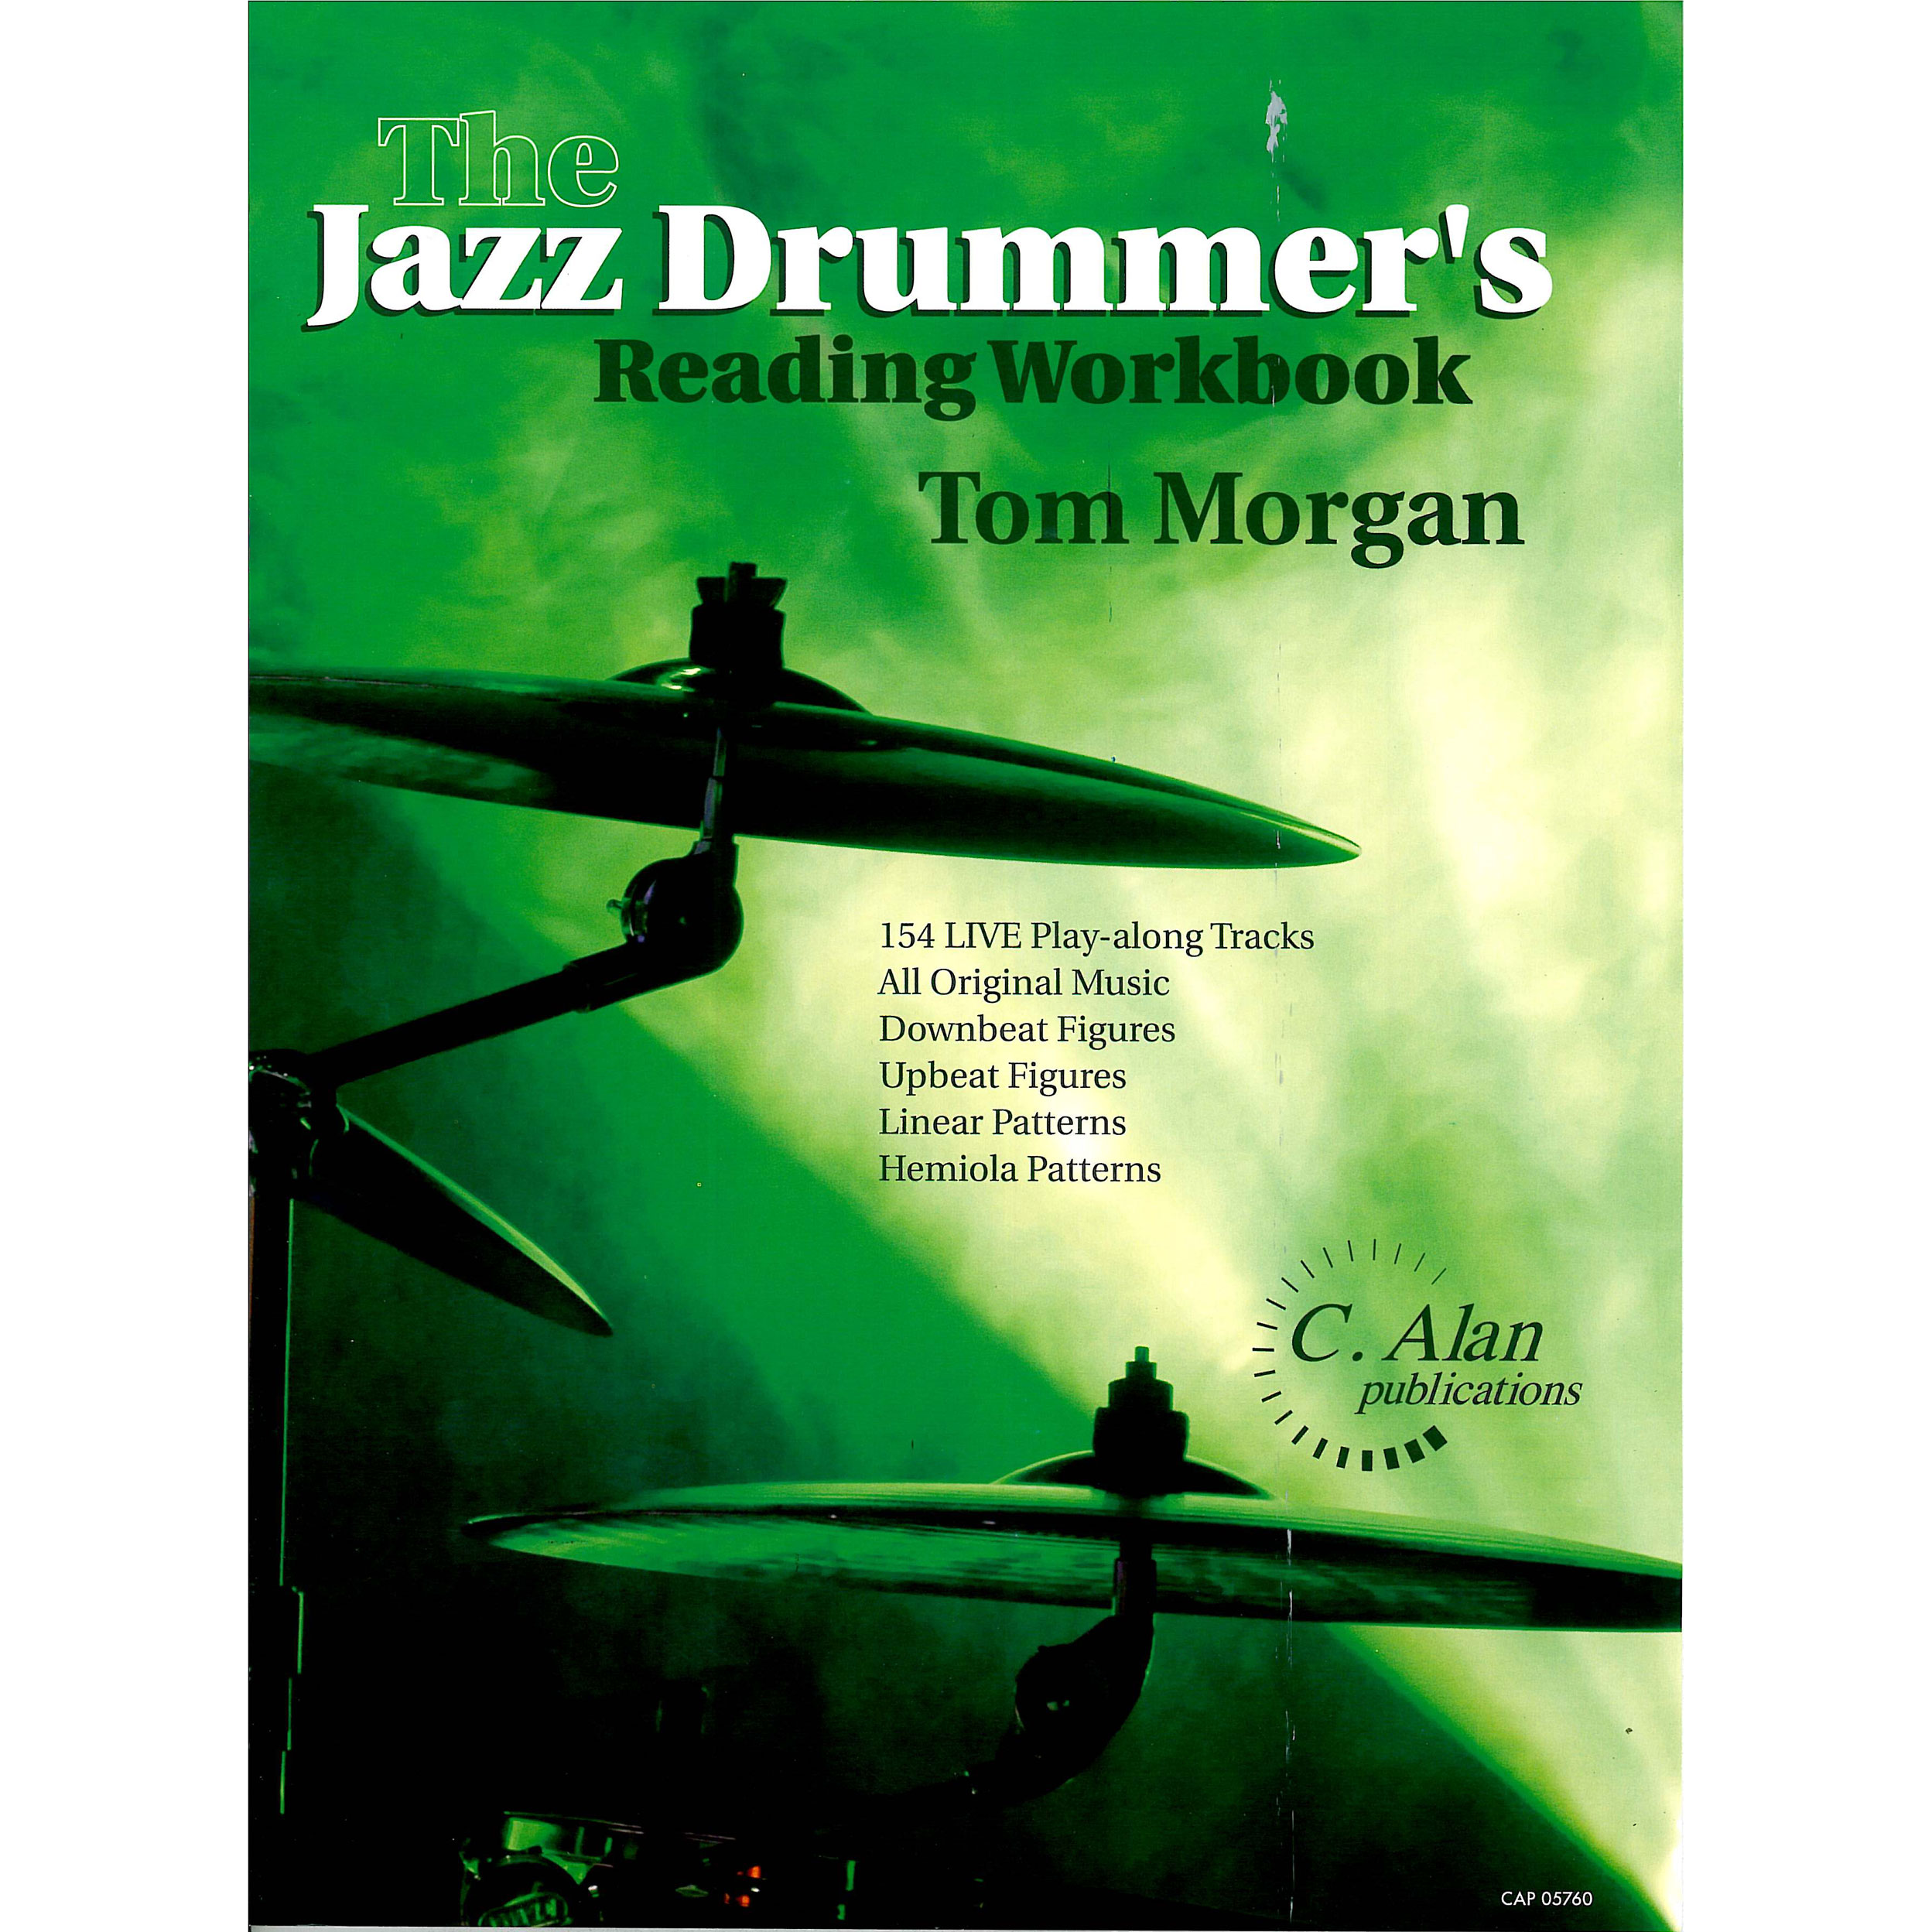 The Jazz Drummer